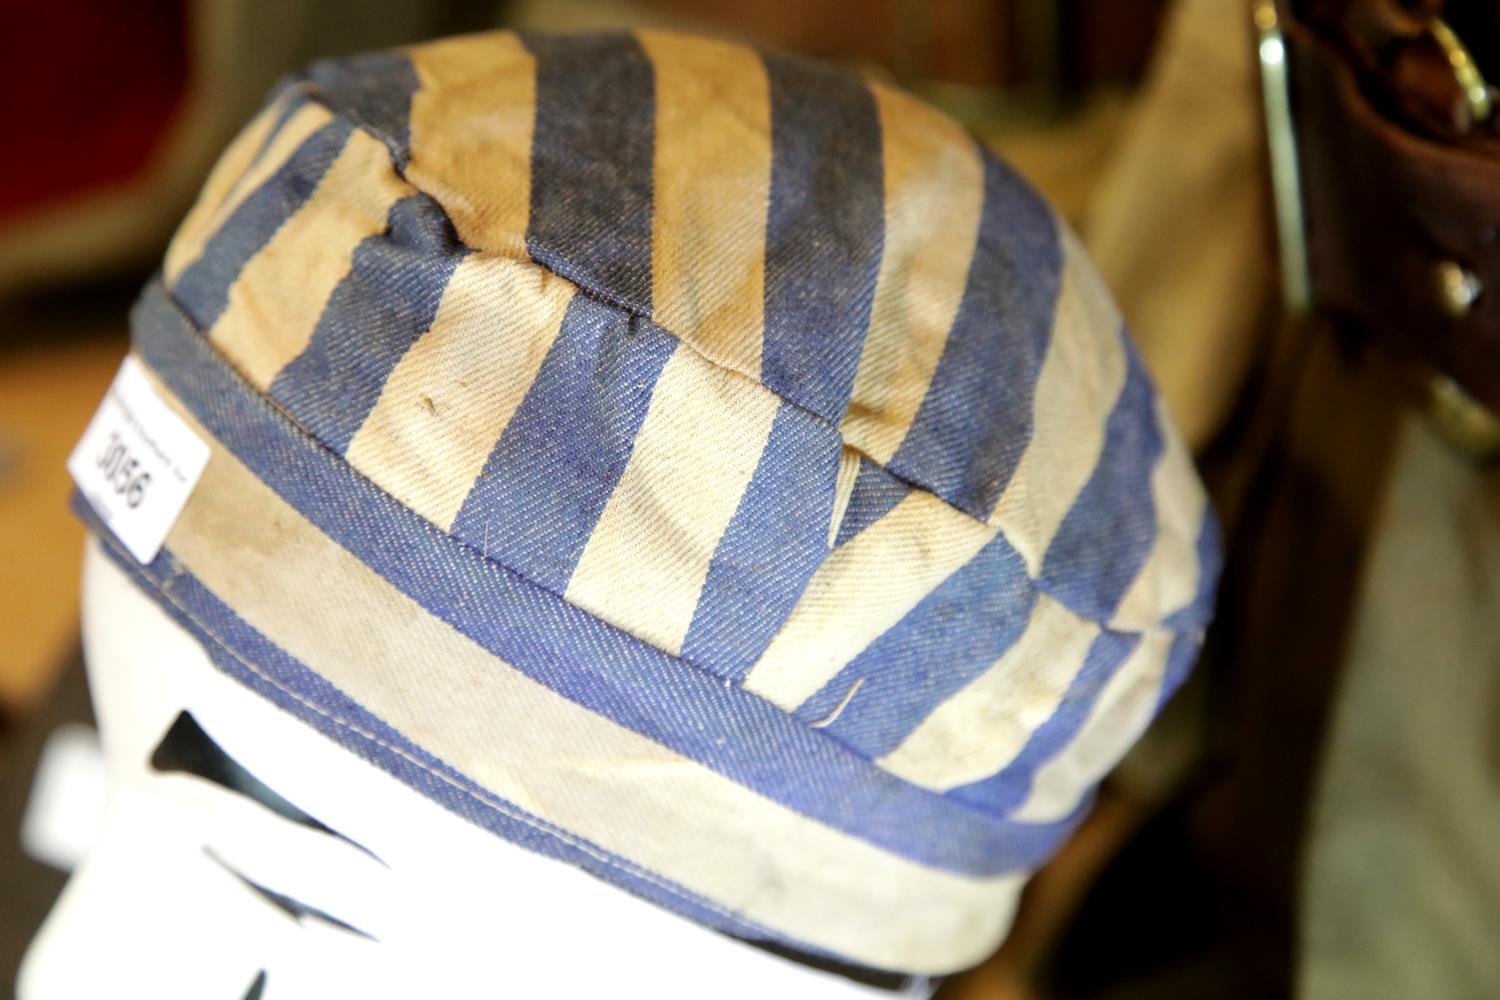 Lot 3056 - WWII type Jewish concentration camp or prison cap. P&P Group 1 (£14+VAT for the first lot and £1+VAT